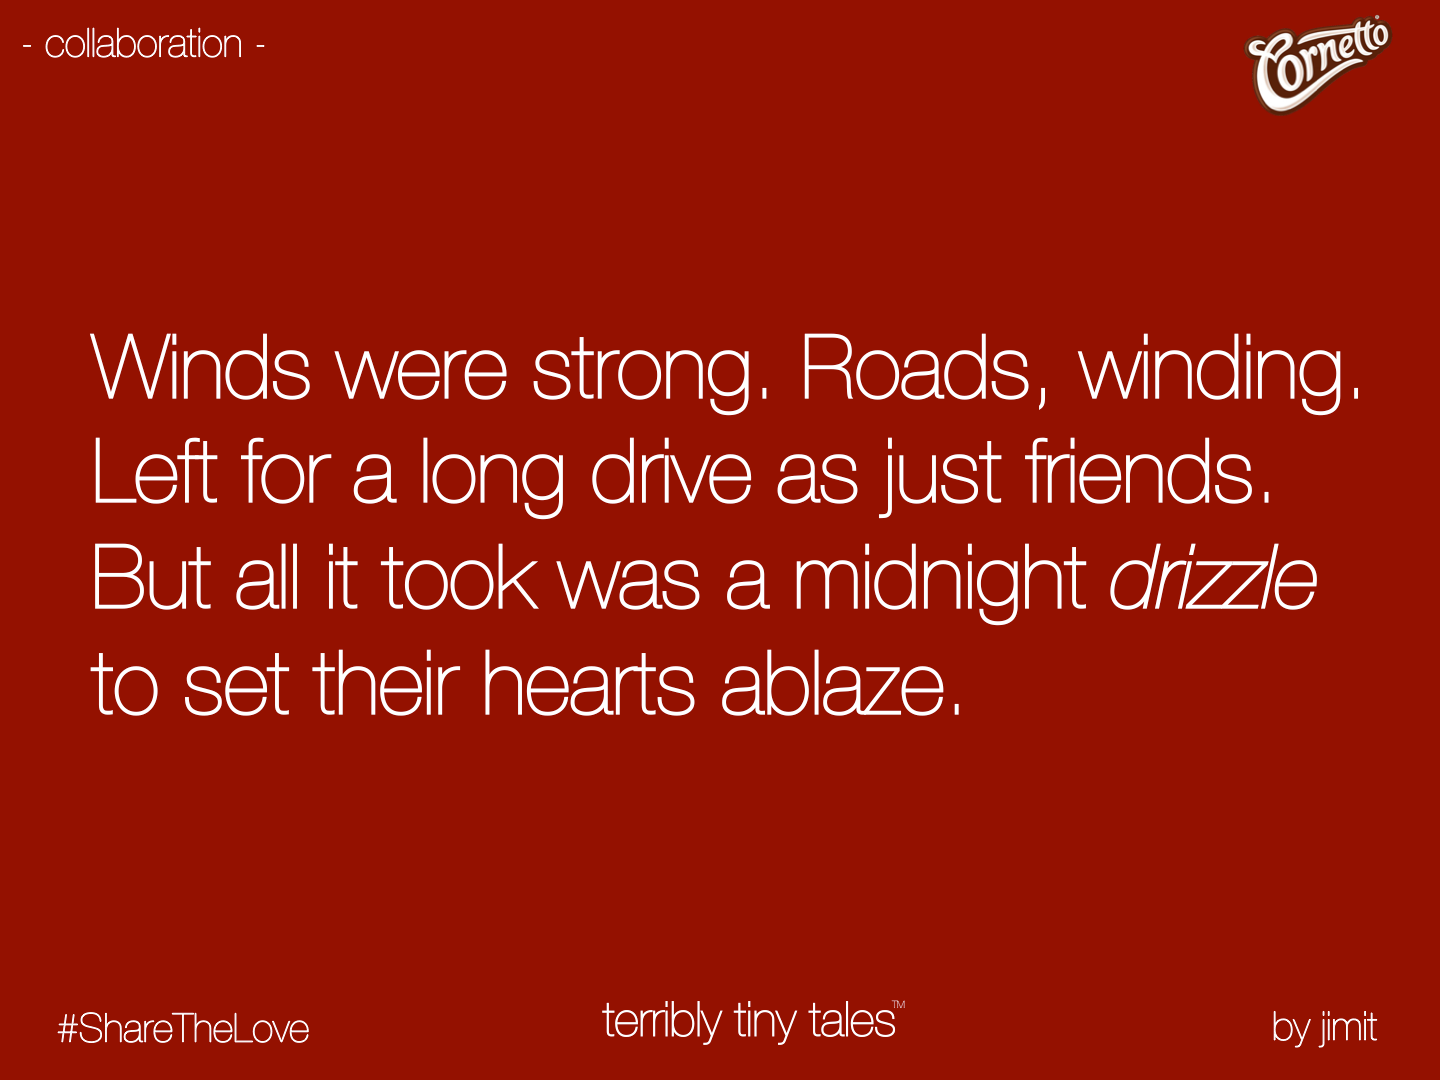 Short But Meaningful Quotes Terribly Tiny Tales  Terribly Tiny Tales  Pinterest  Meaningful